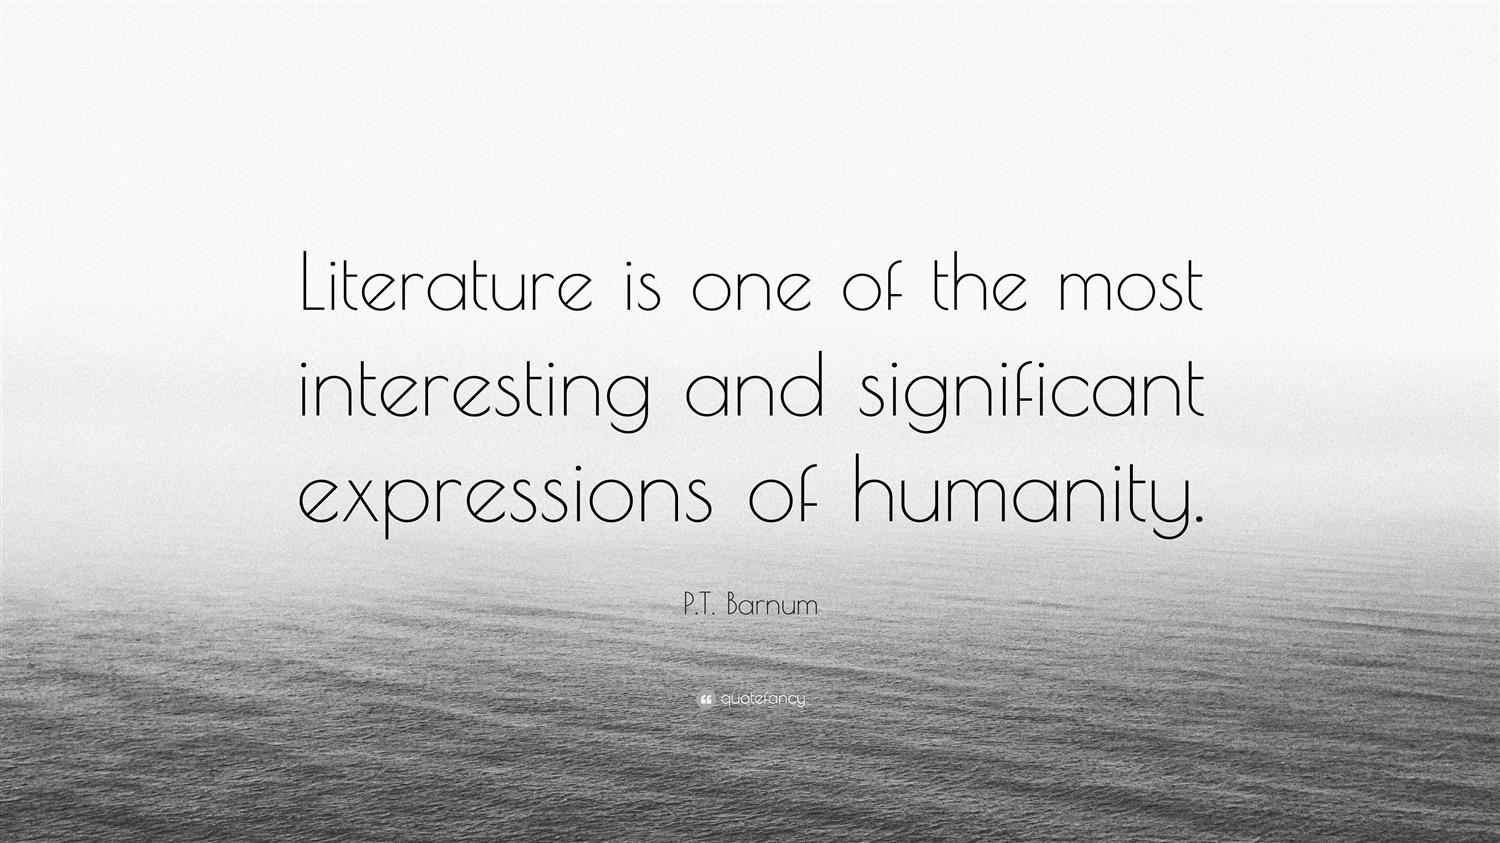 Literature is one of the most interesting and significant expressions of humanity. - P.T. Barnum